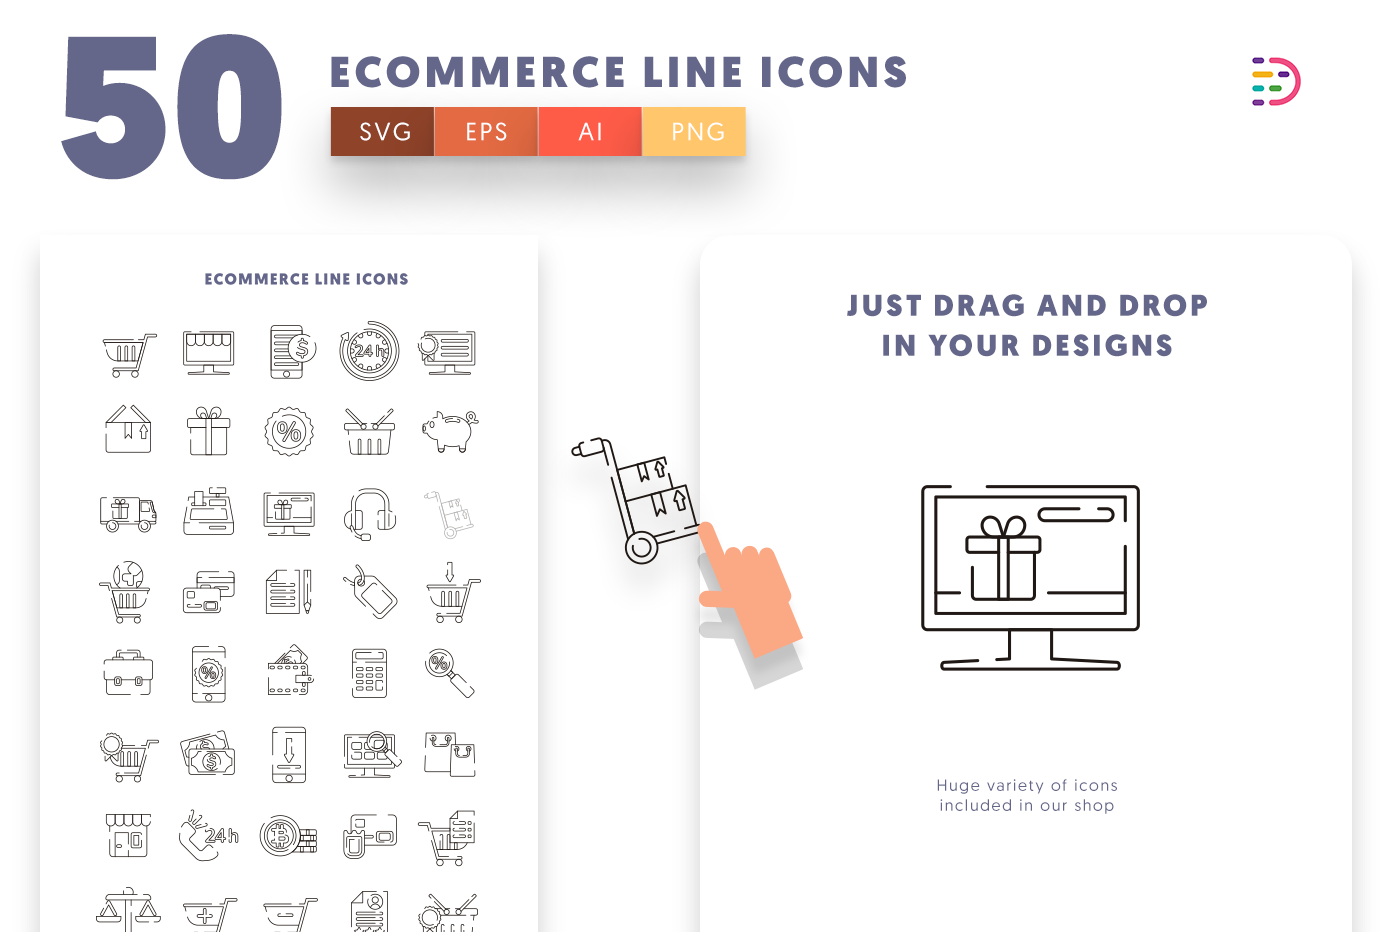 Drag and drop vector 50 Ecommerce Line Icons